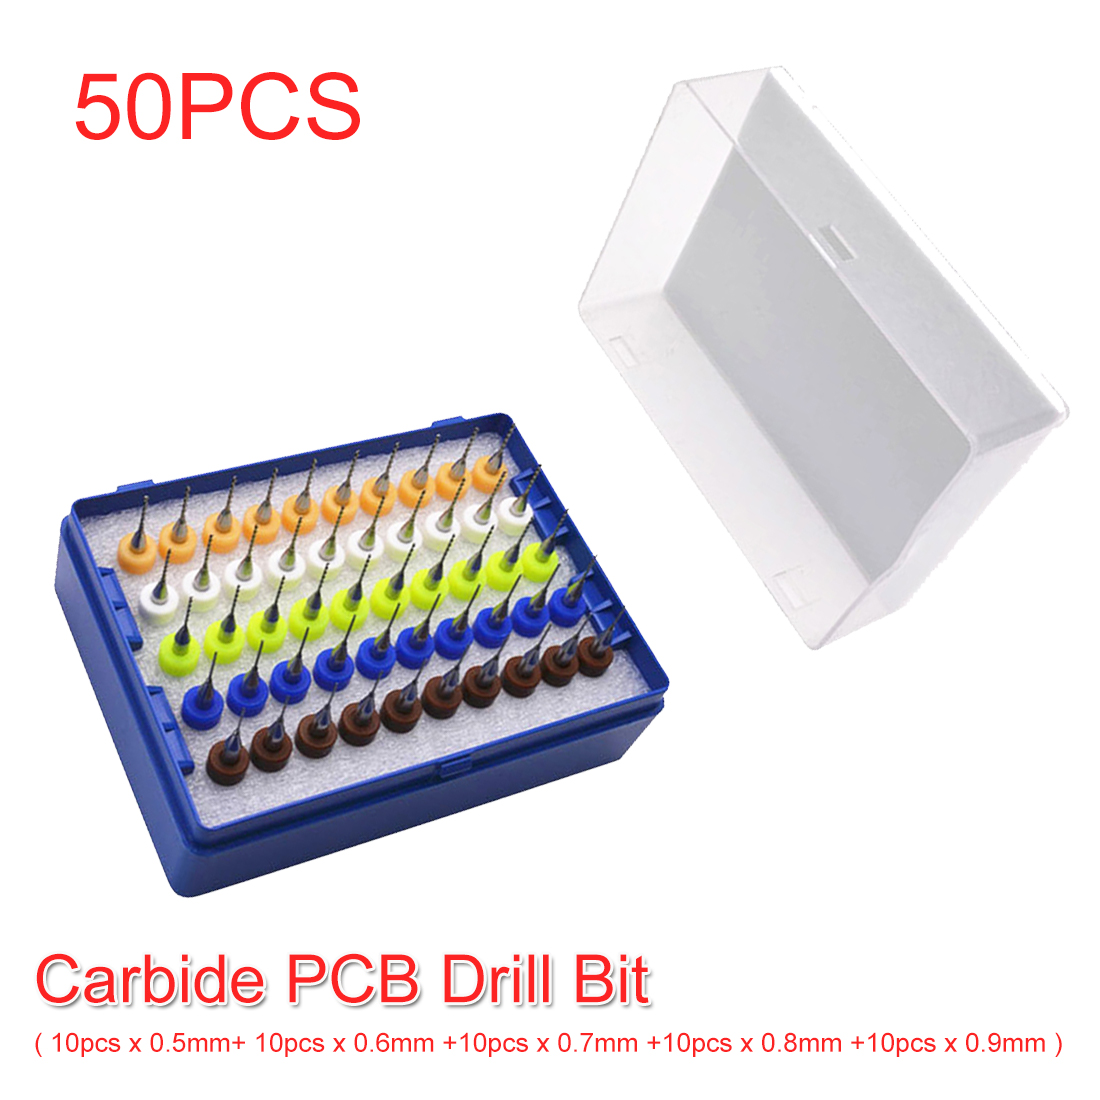 Milling Drilling Tool 50pcs Tungsten Carbide PCB Drill Circuit Board Engraving Tool 3.175mm Shank 0.5mm 0.6mm 0.7mm 0.8mm 0.9mm